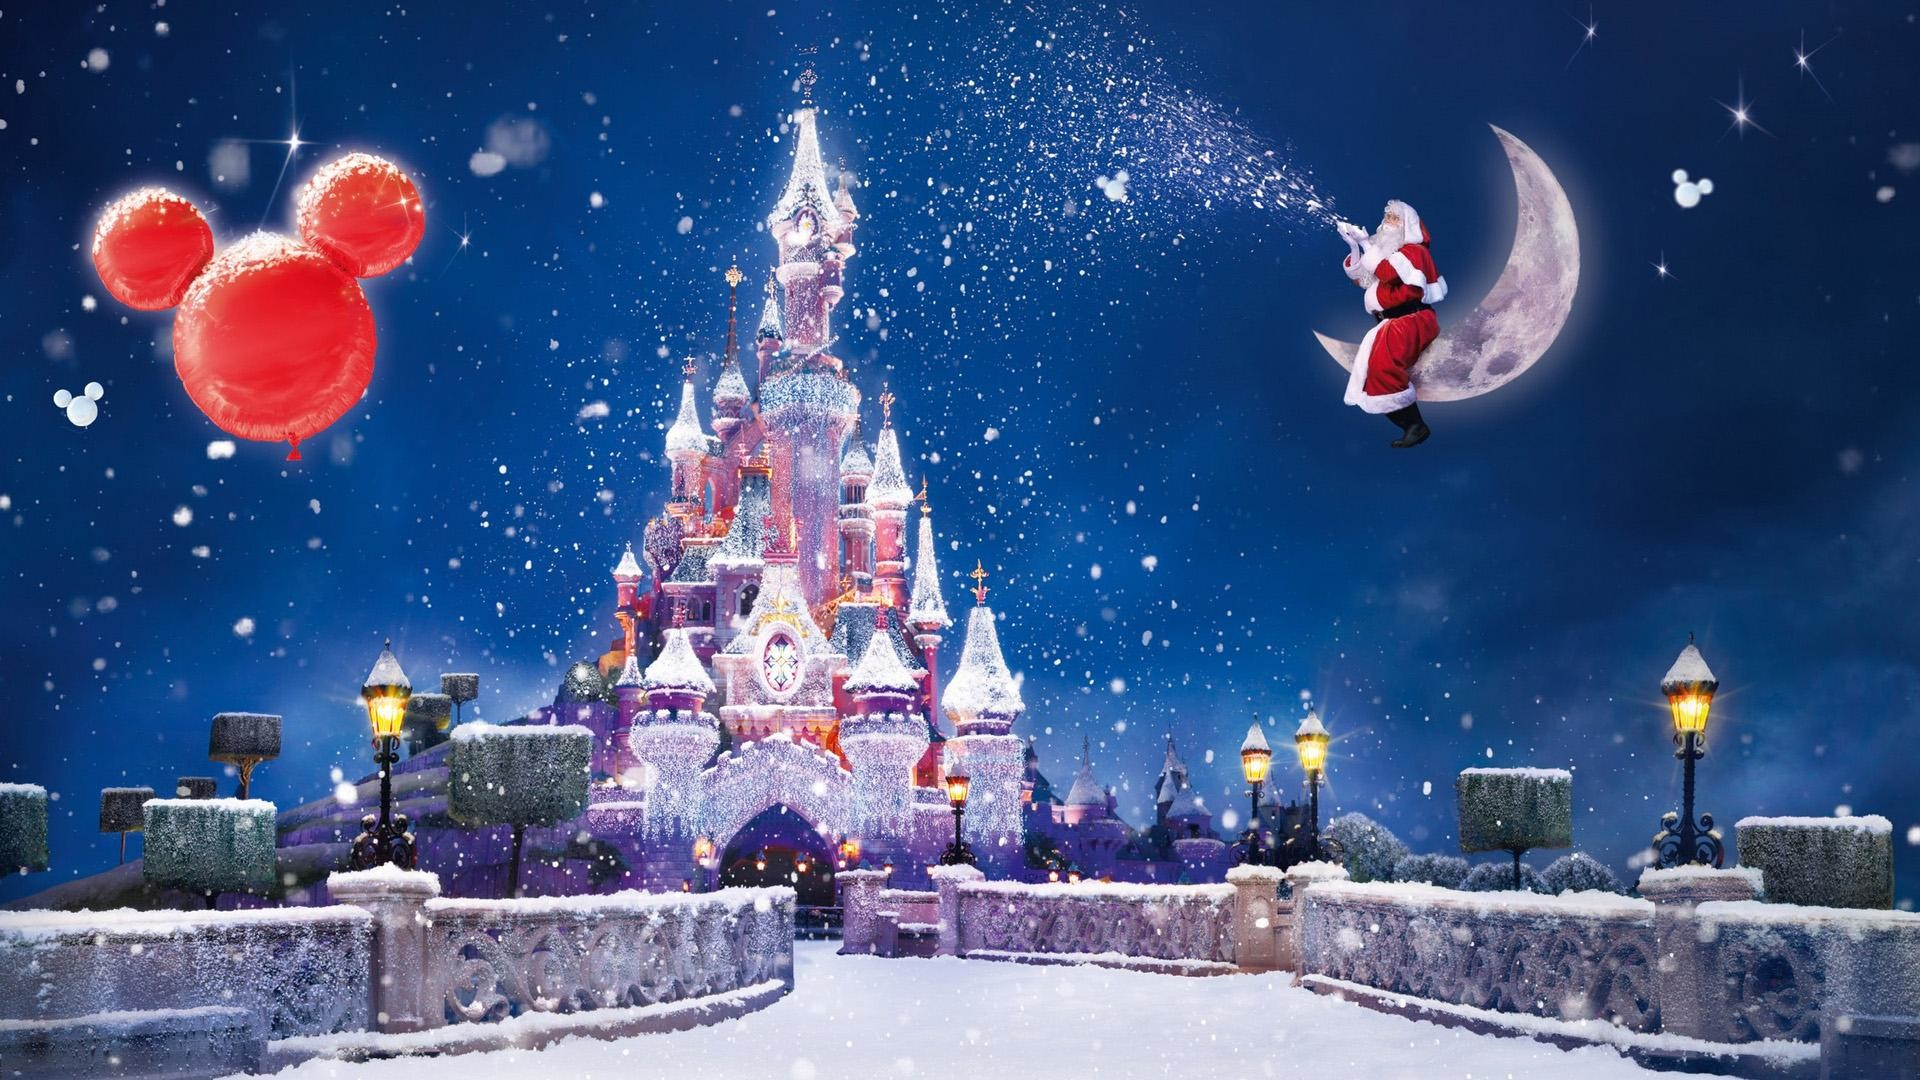 Photos Merry Christmas Download HD.